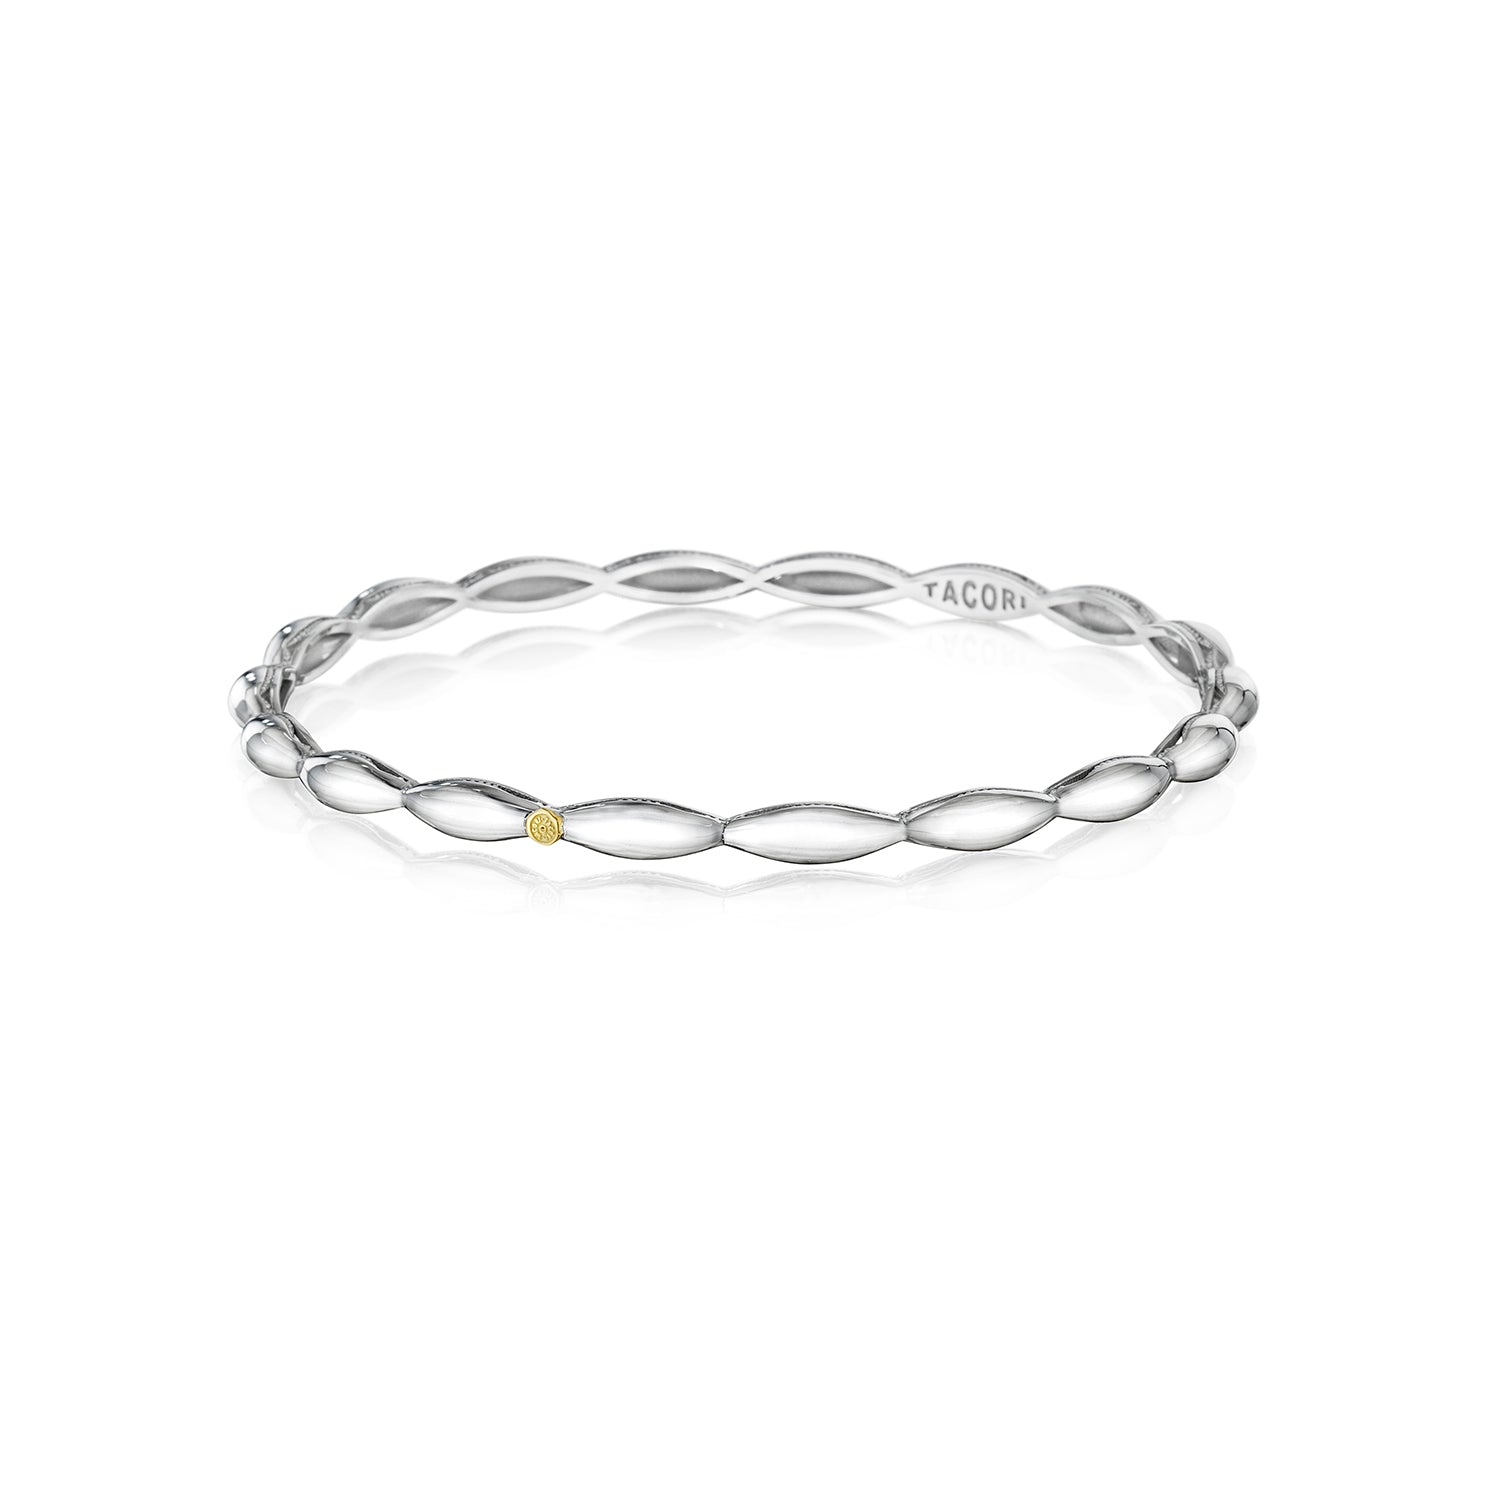 Tacori 'The Ivy Lane' Crescent Eternity Bracelet